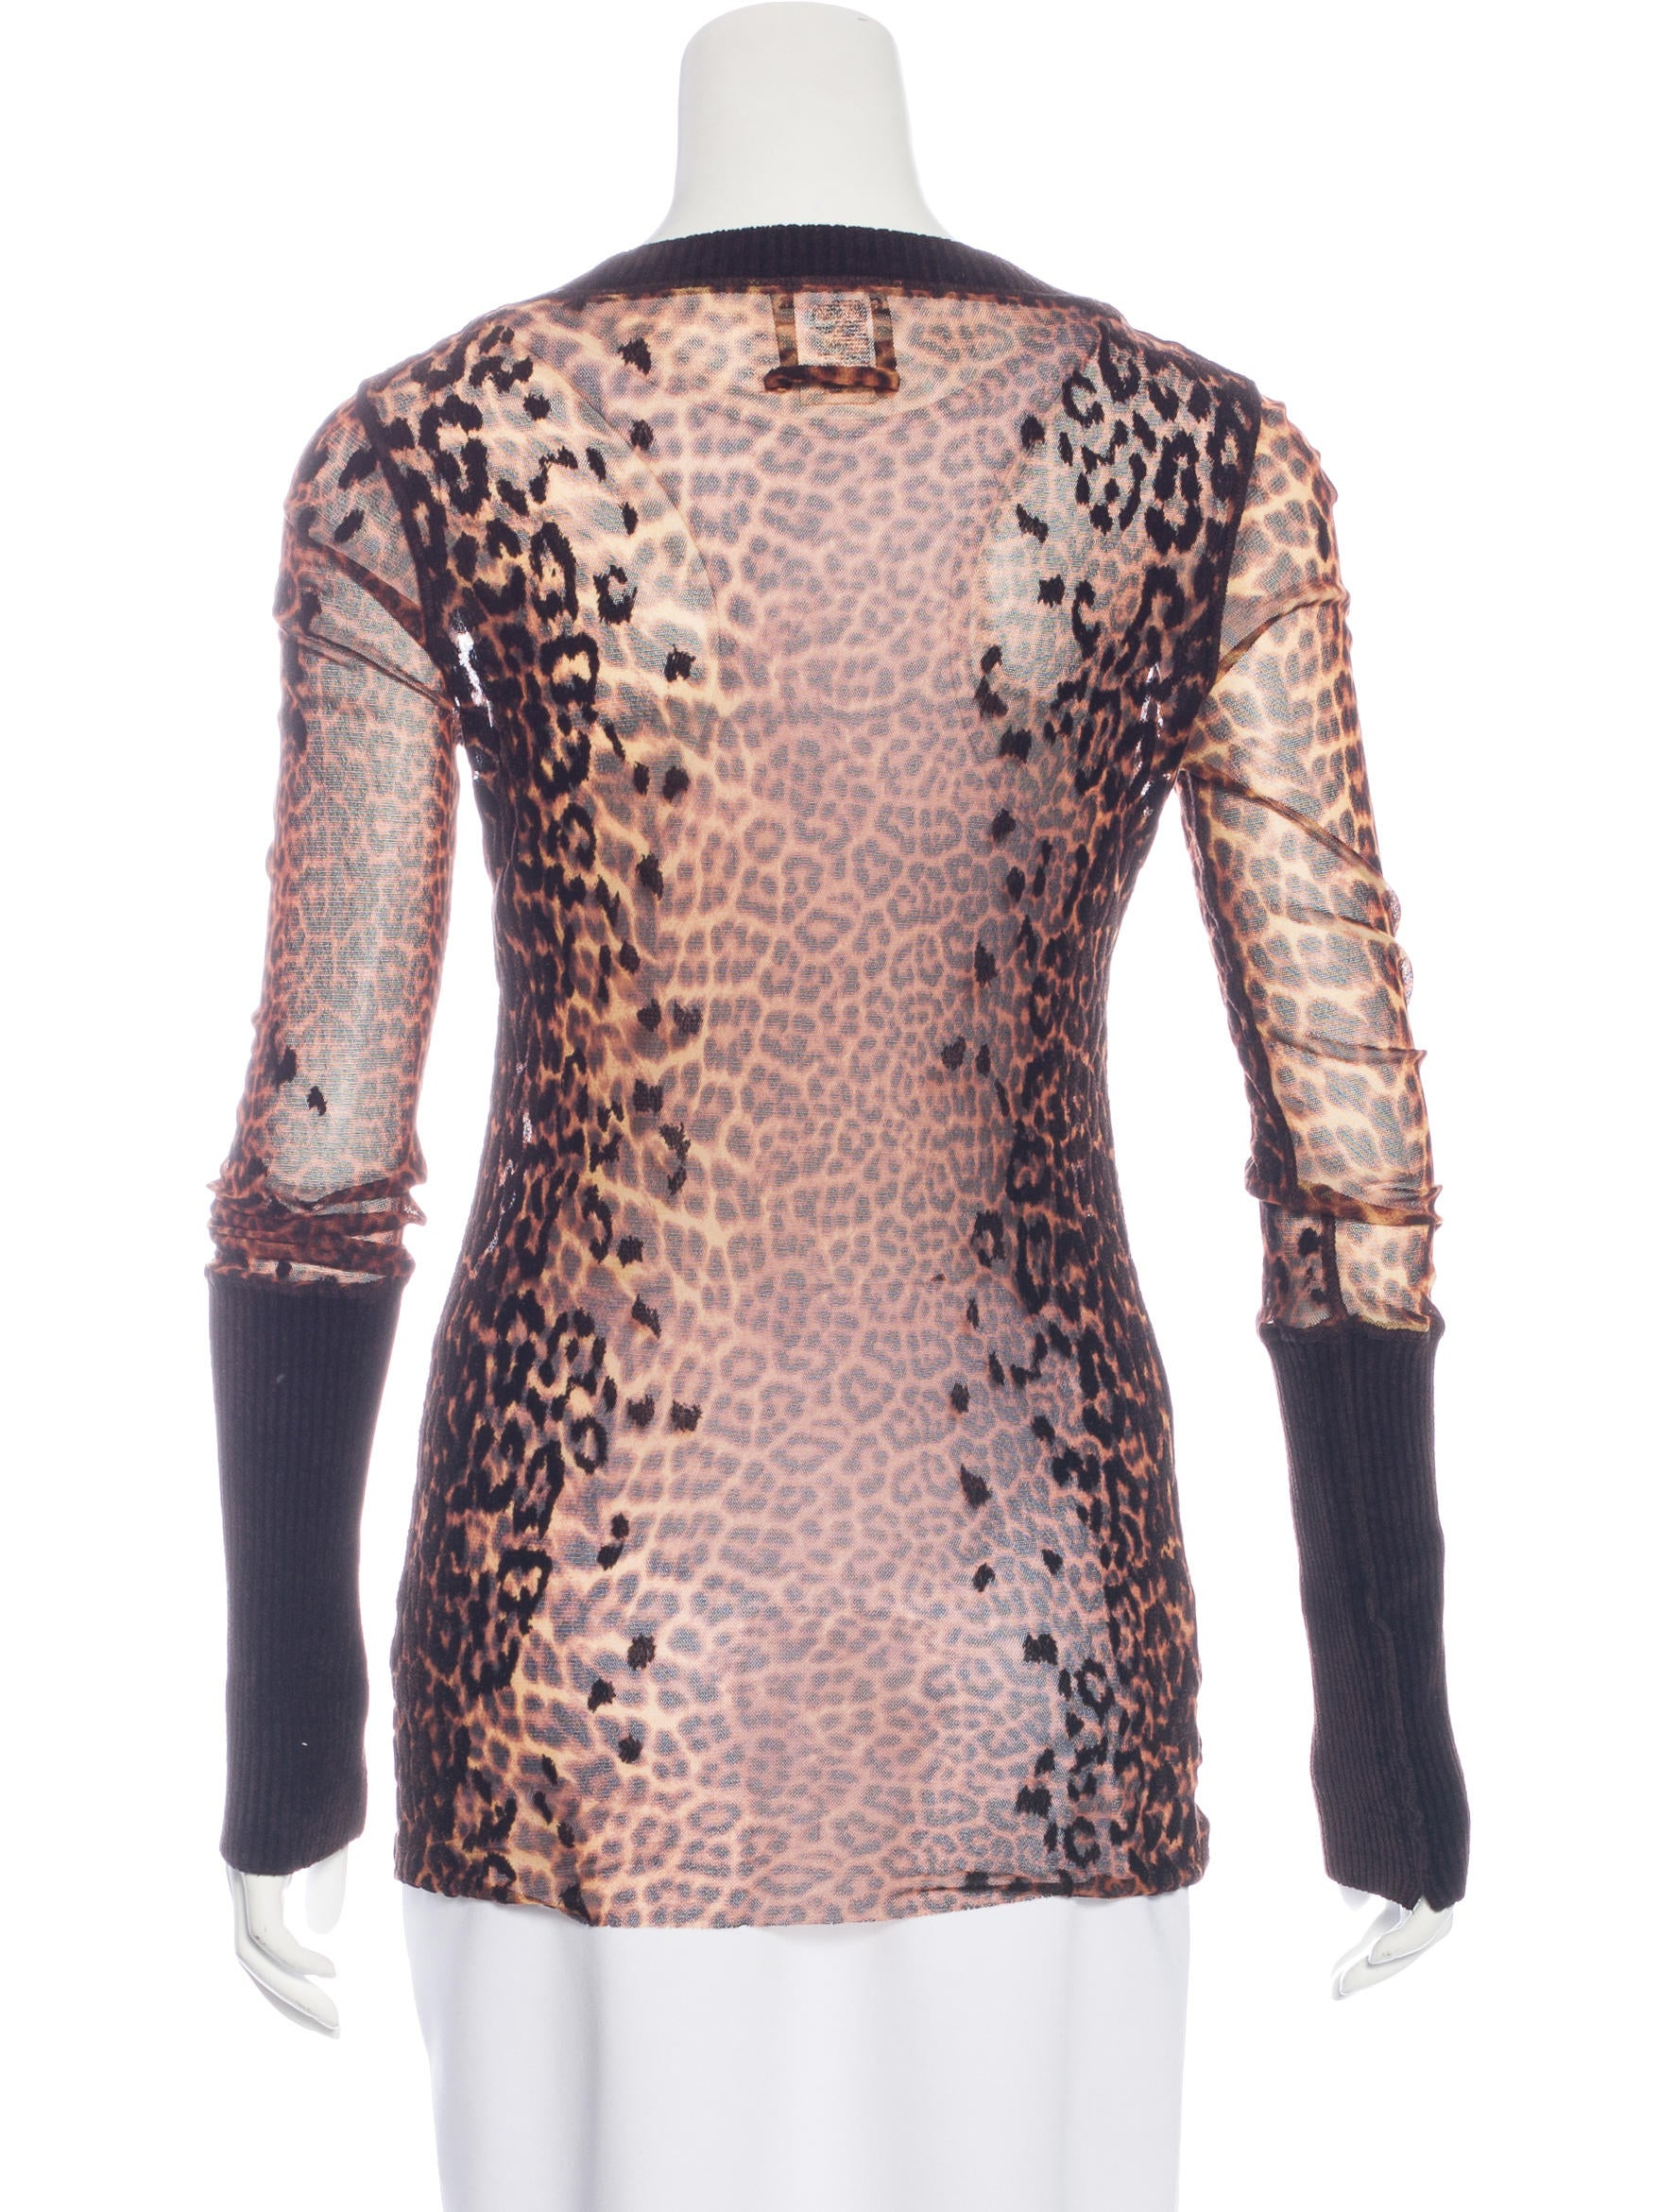 Jean paul gaultier mesh leopard print top clothing for Jean paul gaultier clothing